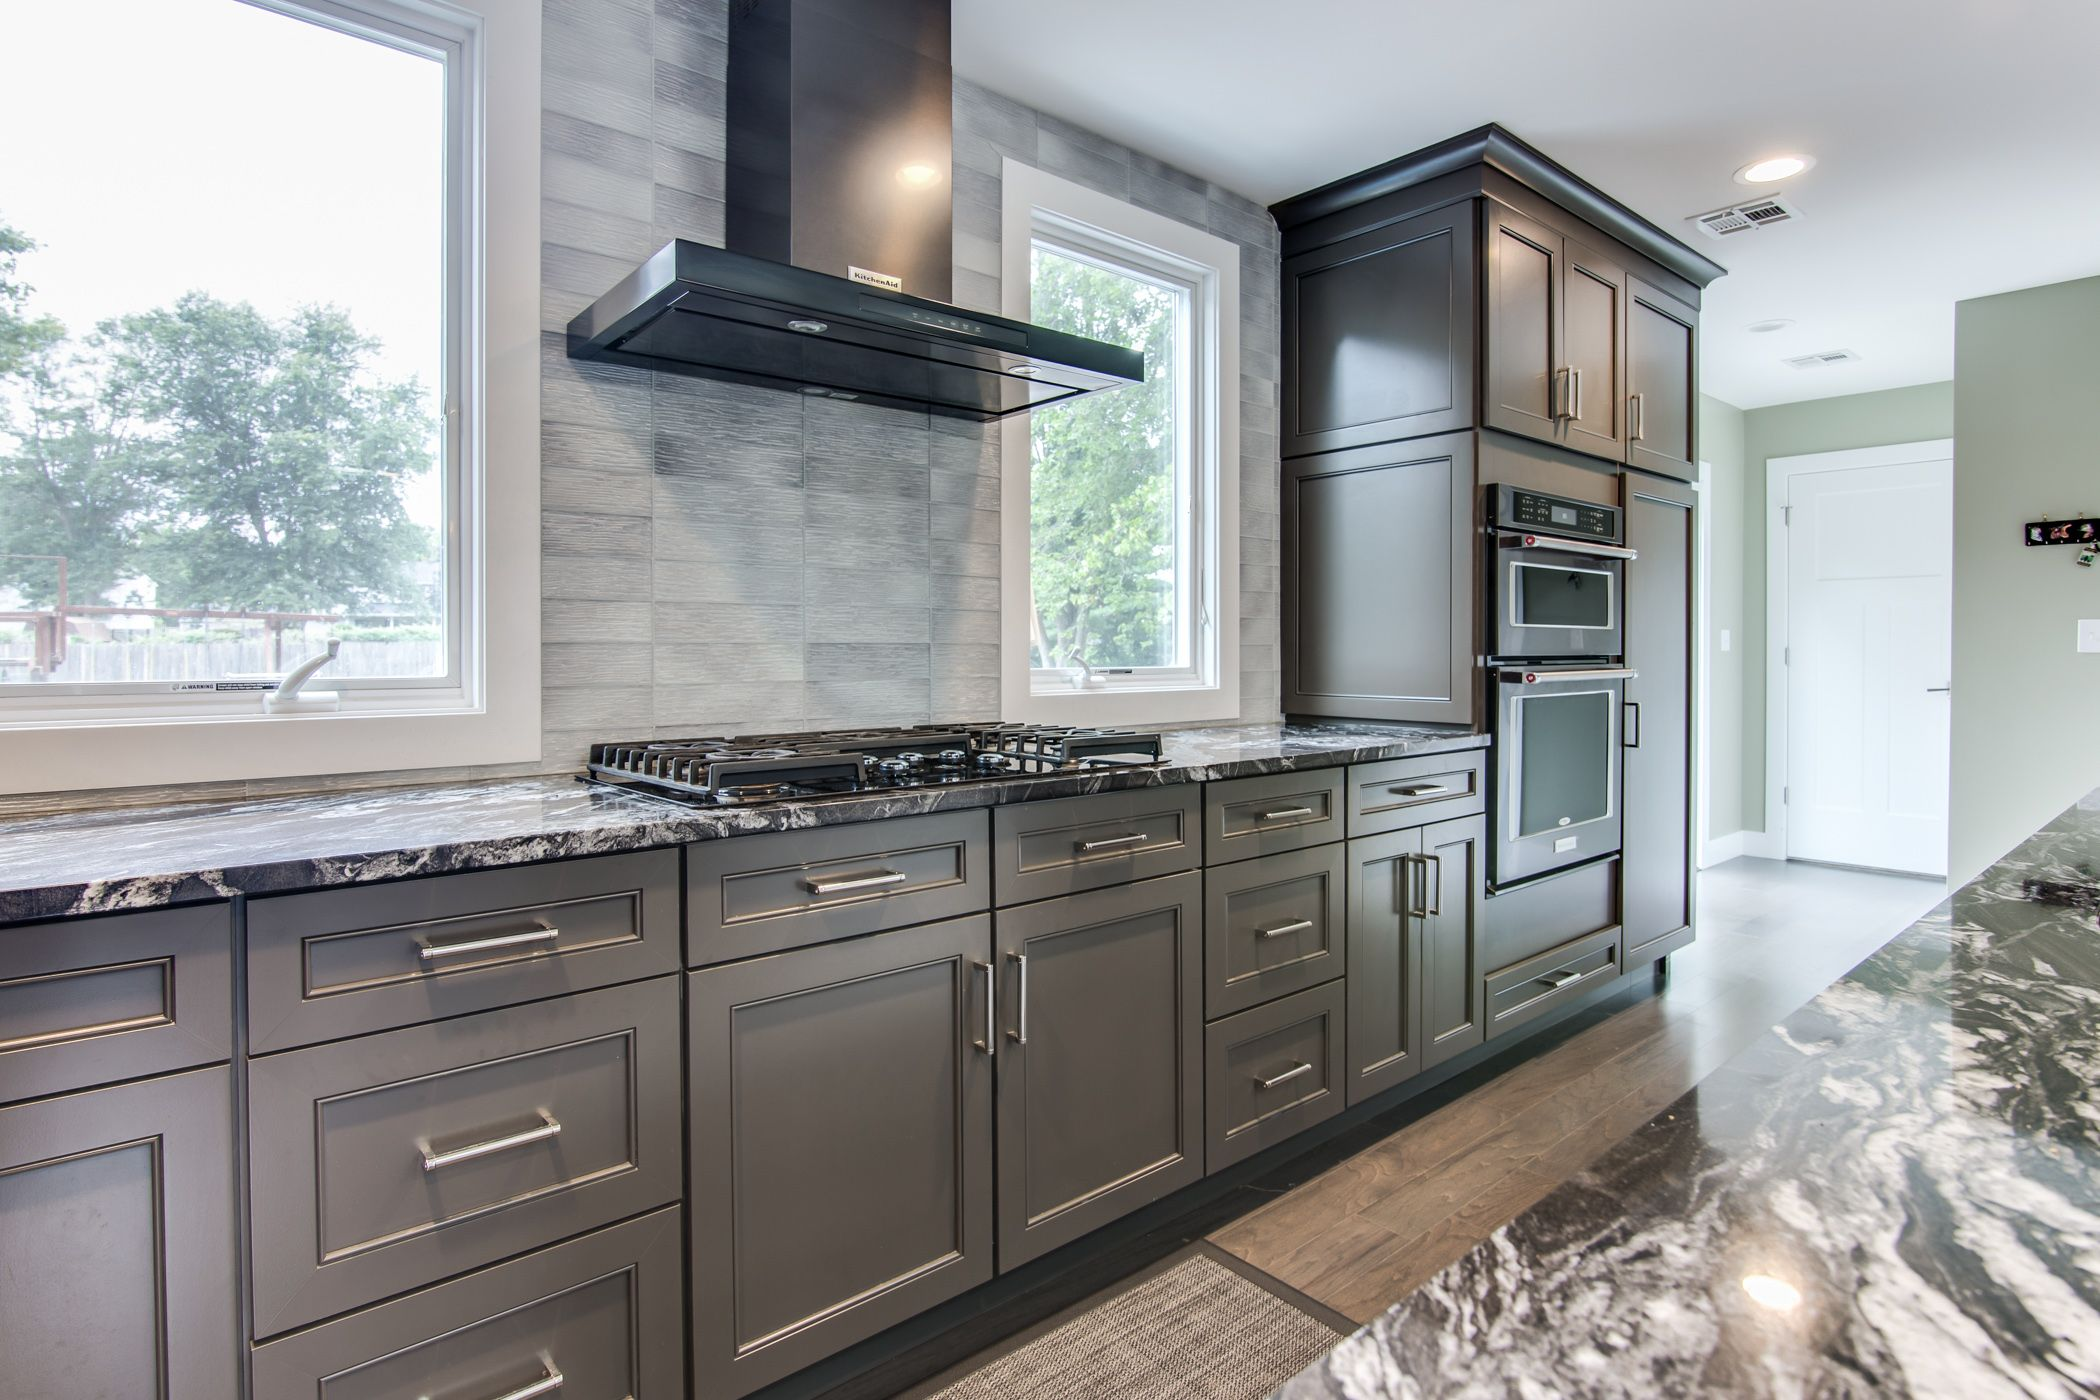 Kvib606dbs In Black Stainless Steel With Printshield Tm Finish By Kitchenaid In Lawrence Township Nj 36 Island Mount 3 Speed Canopy Hood Black Stainless Black Stainless Steel Kitchen Black Appliances Kitchen Stainless